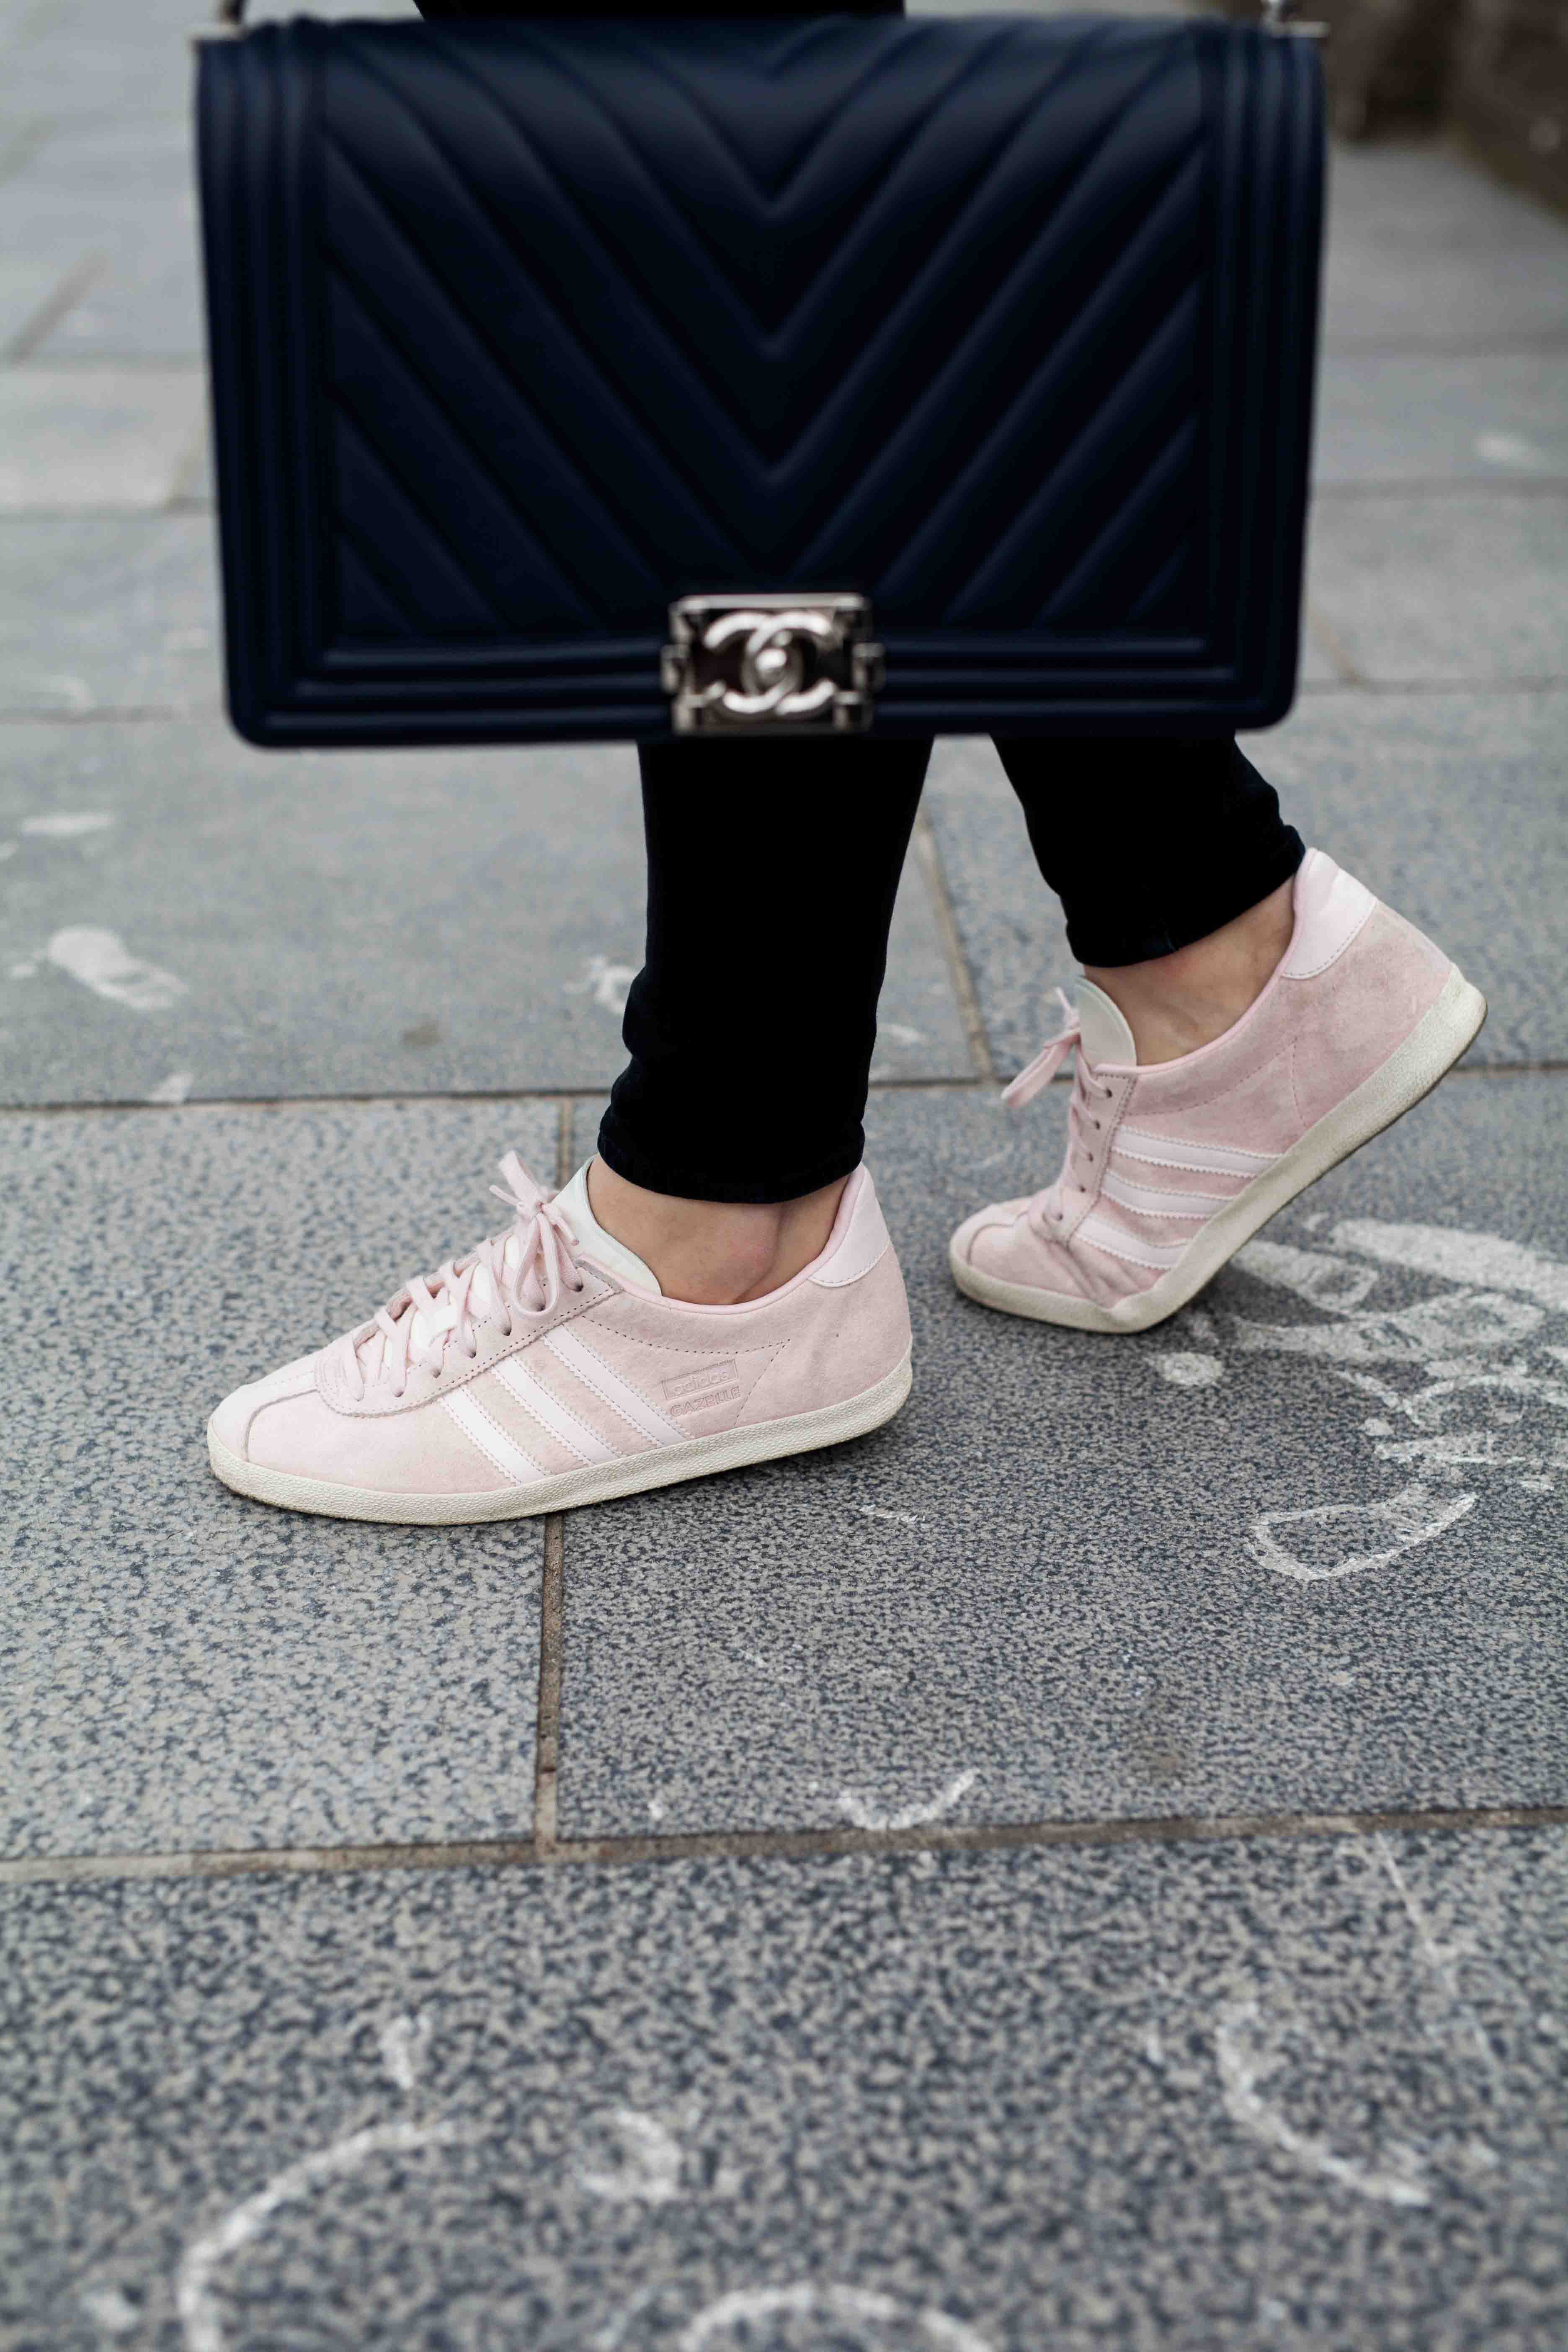 chanel boy bag & gazelle sneakers